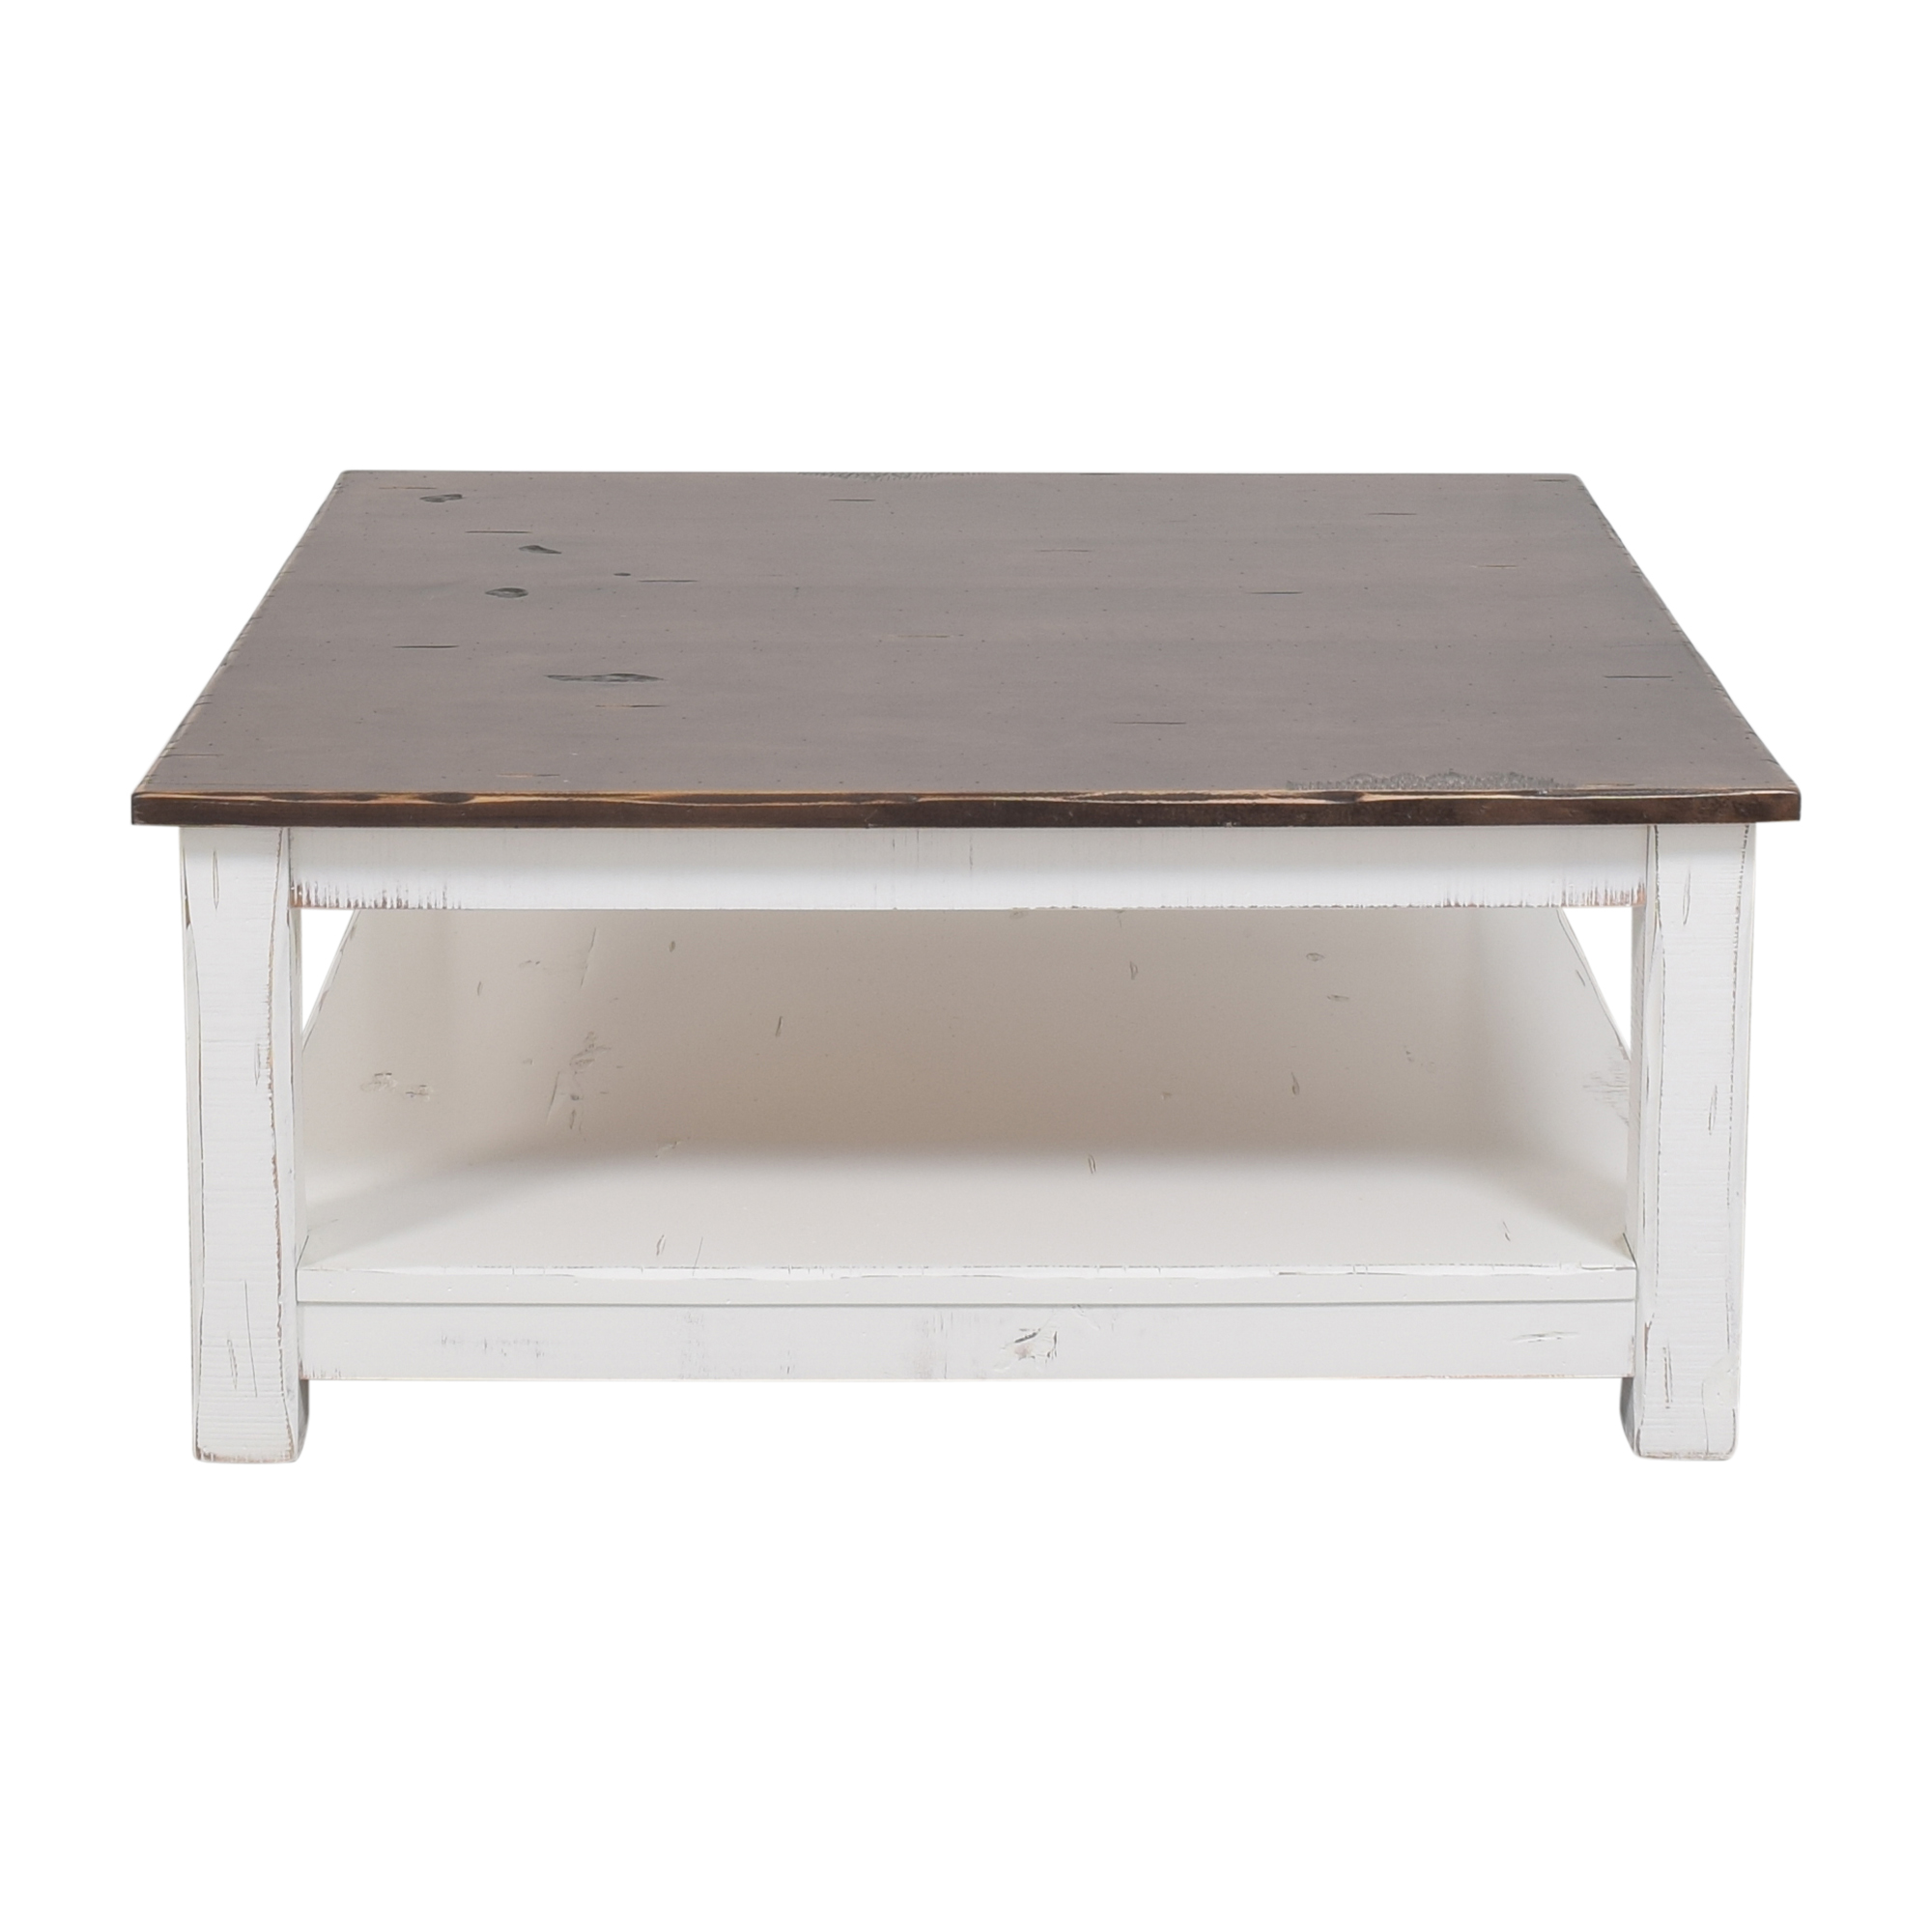 Canadel Canadel Champlain Living Collection Square Coffee Table pa